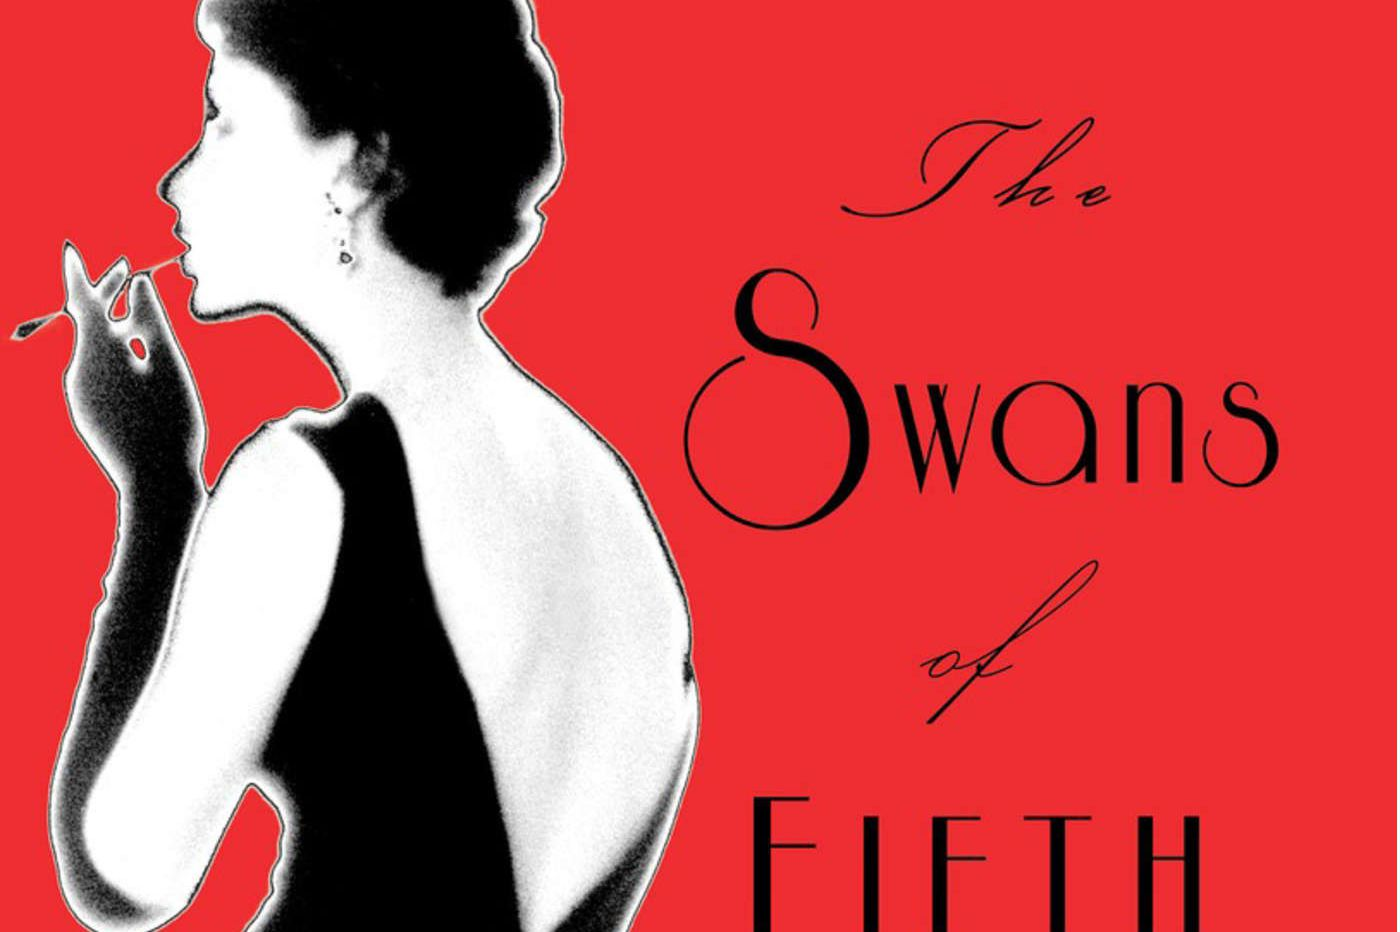 'Swans of Fifth Avenue' a tale of Truman Capote and Babe Paley